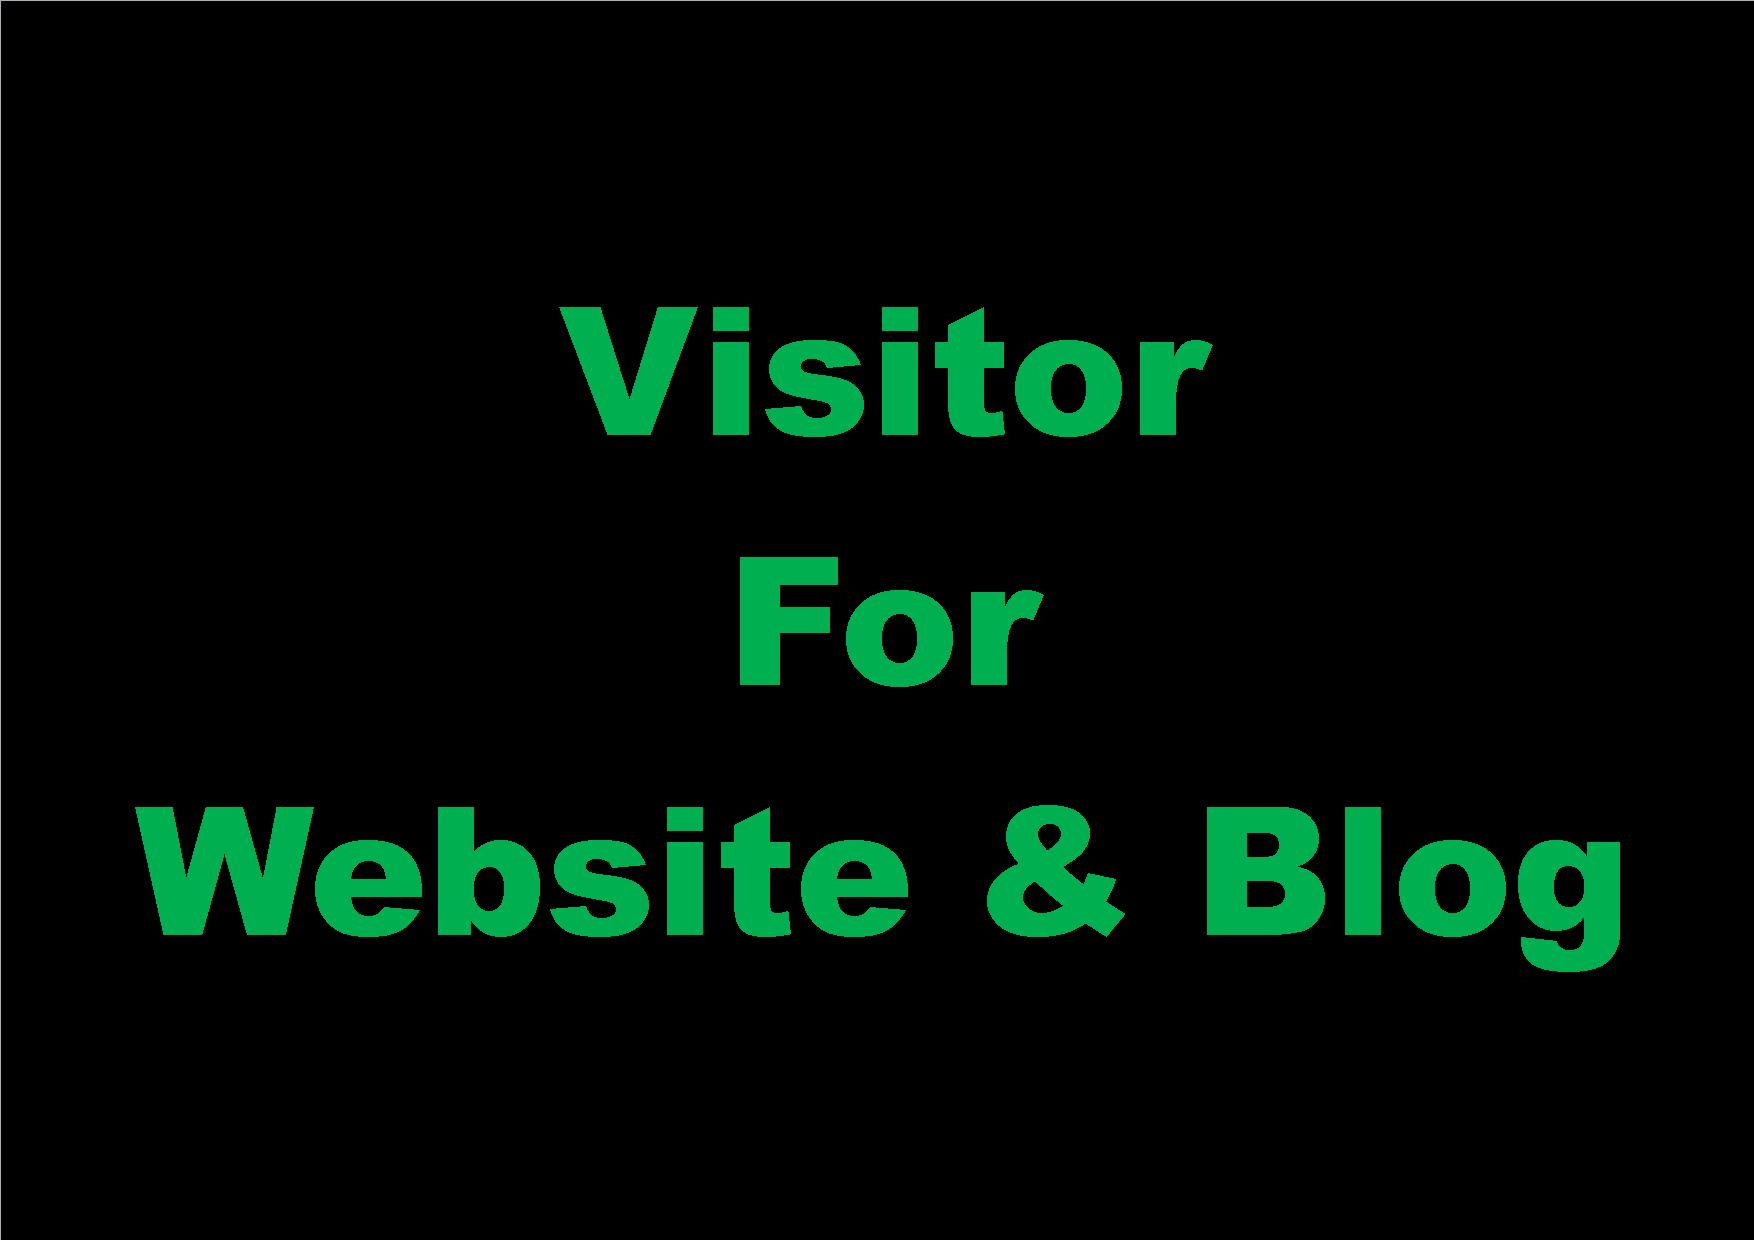 20,000+ Visitors for Website & Blog